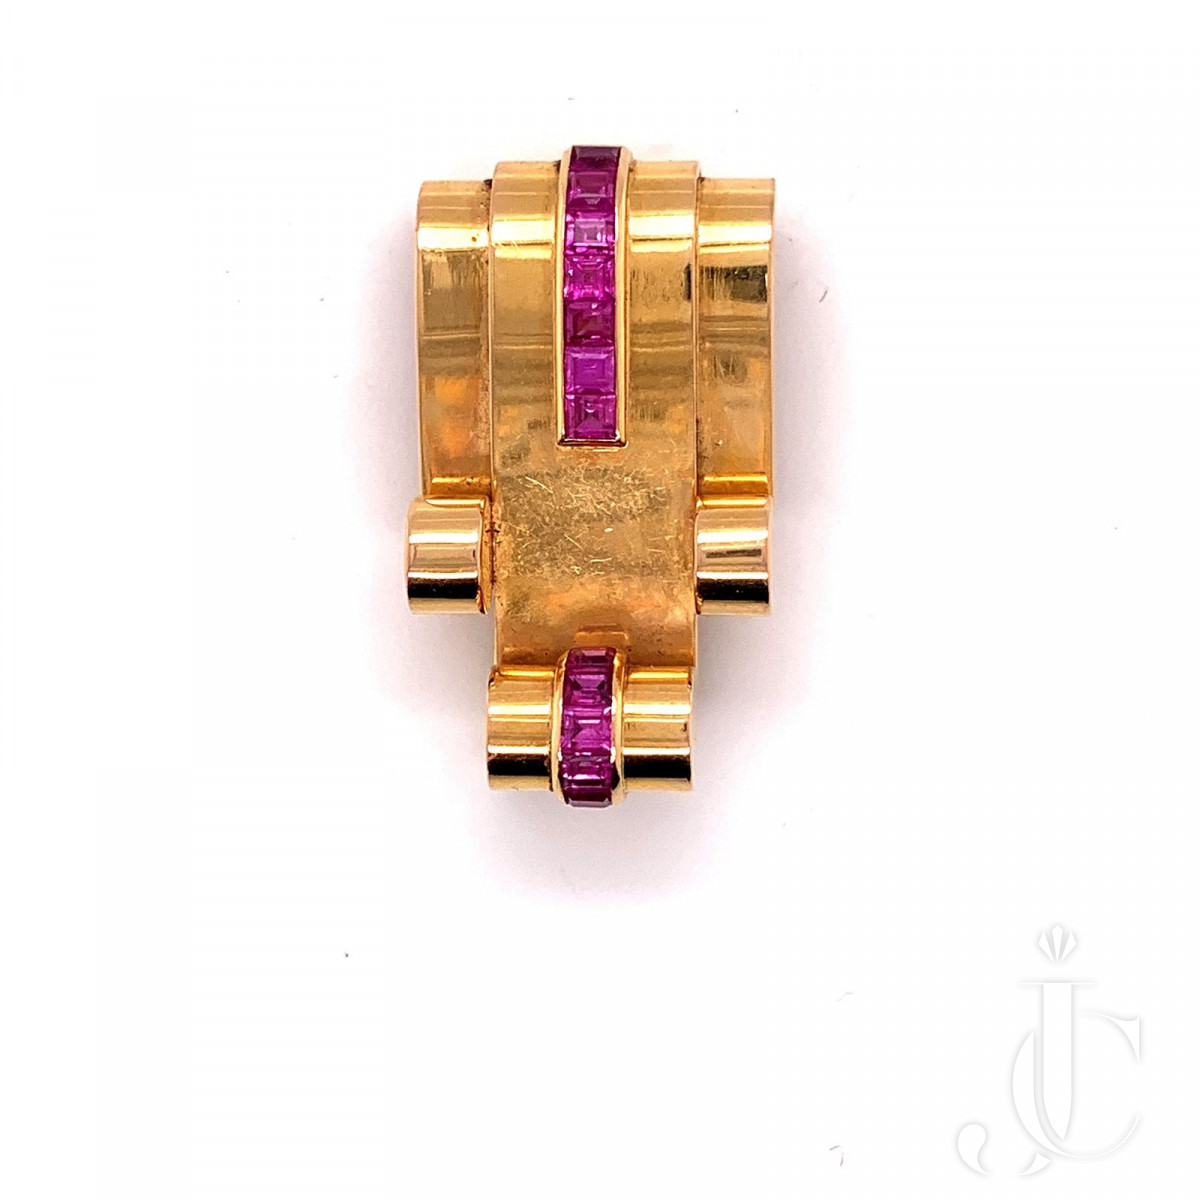 18K Gold French brooch with calibrated ruby by Mauboussin